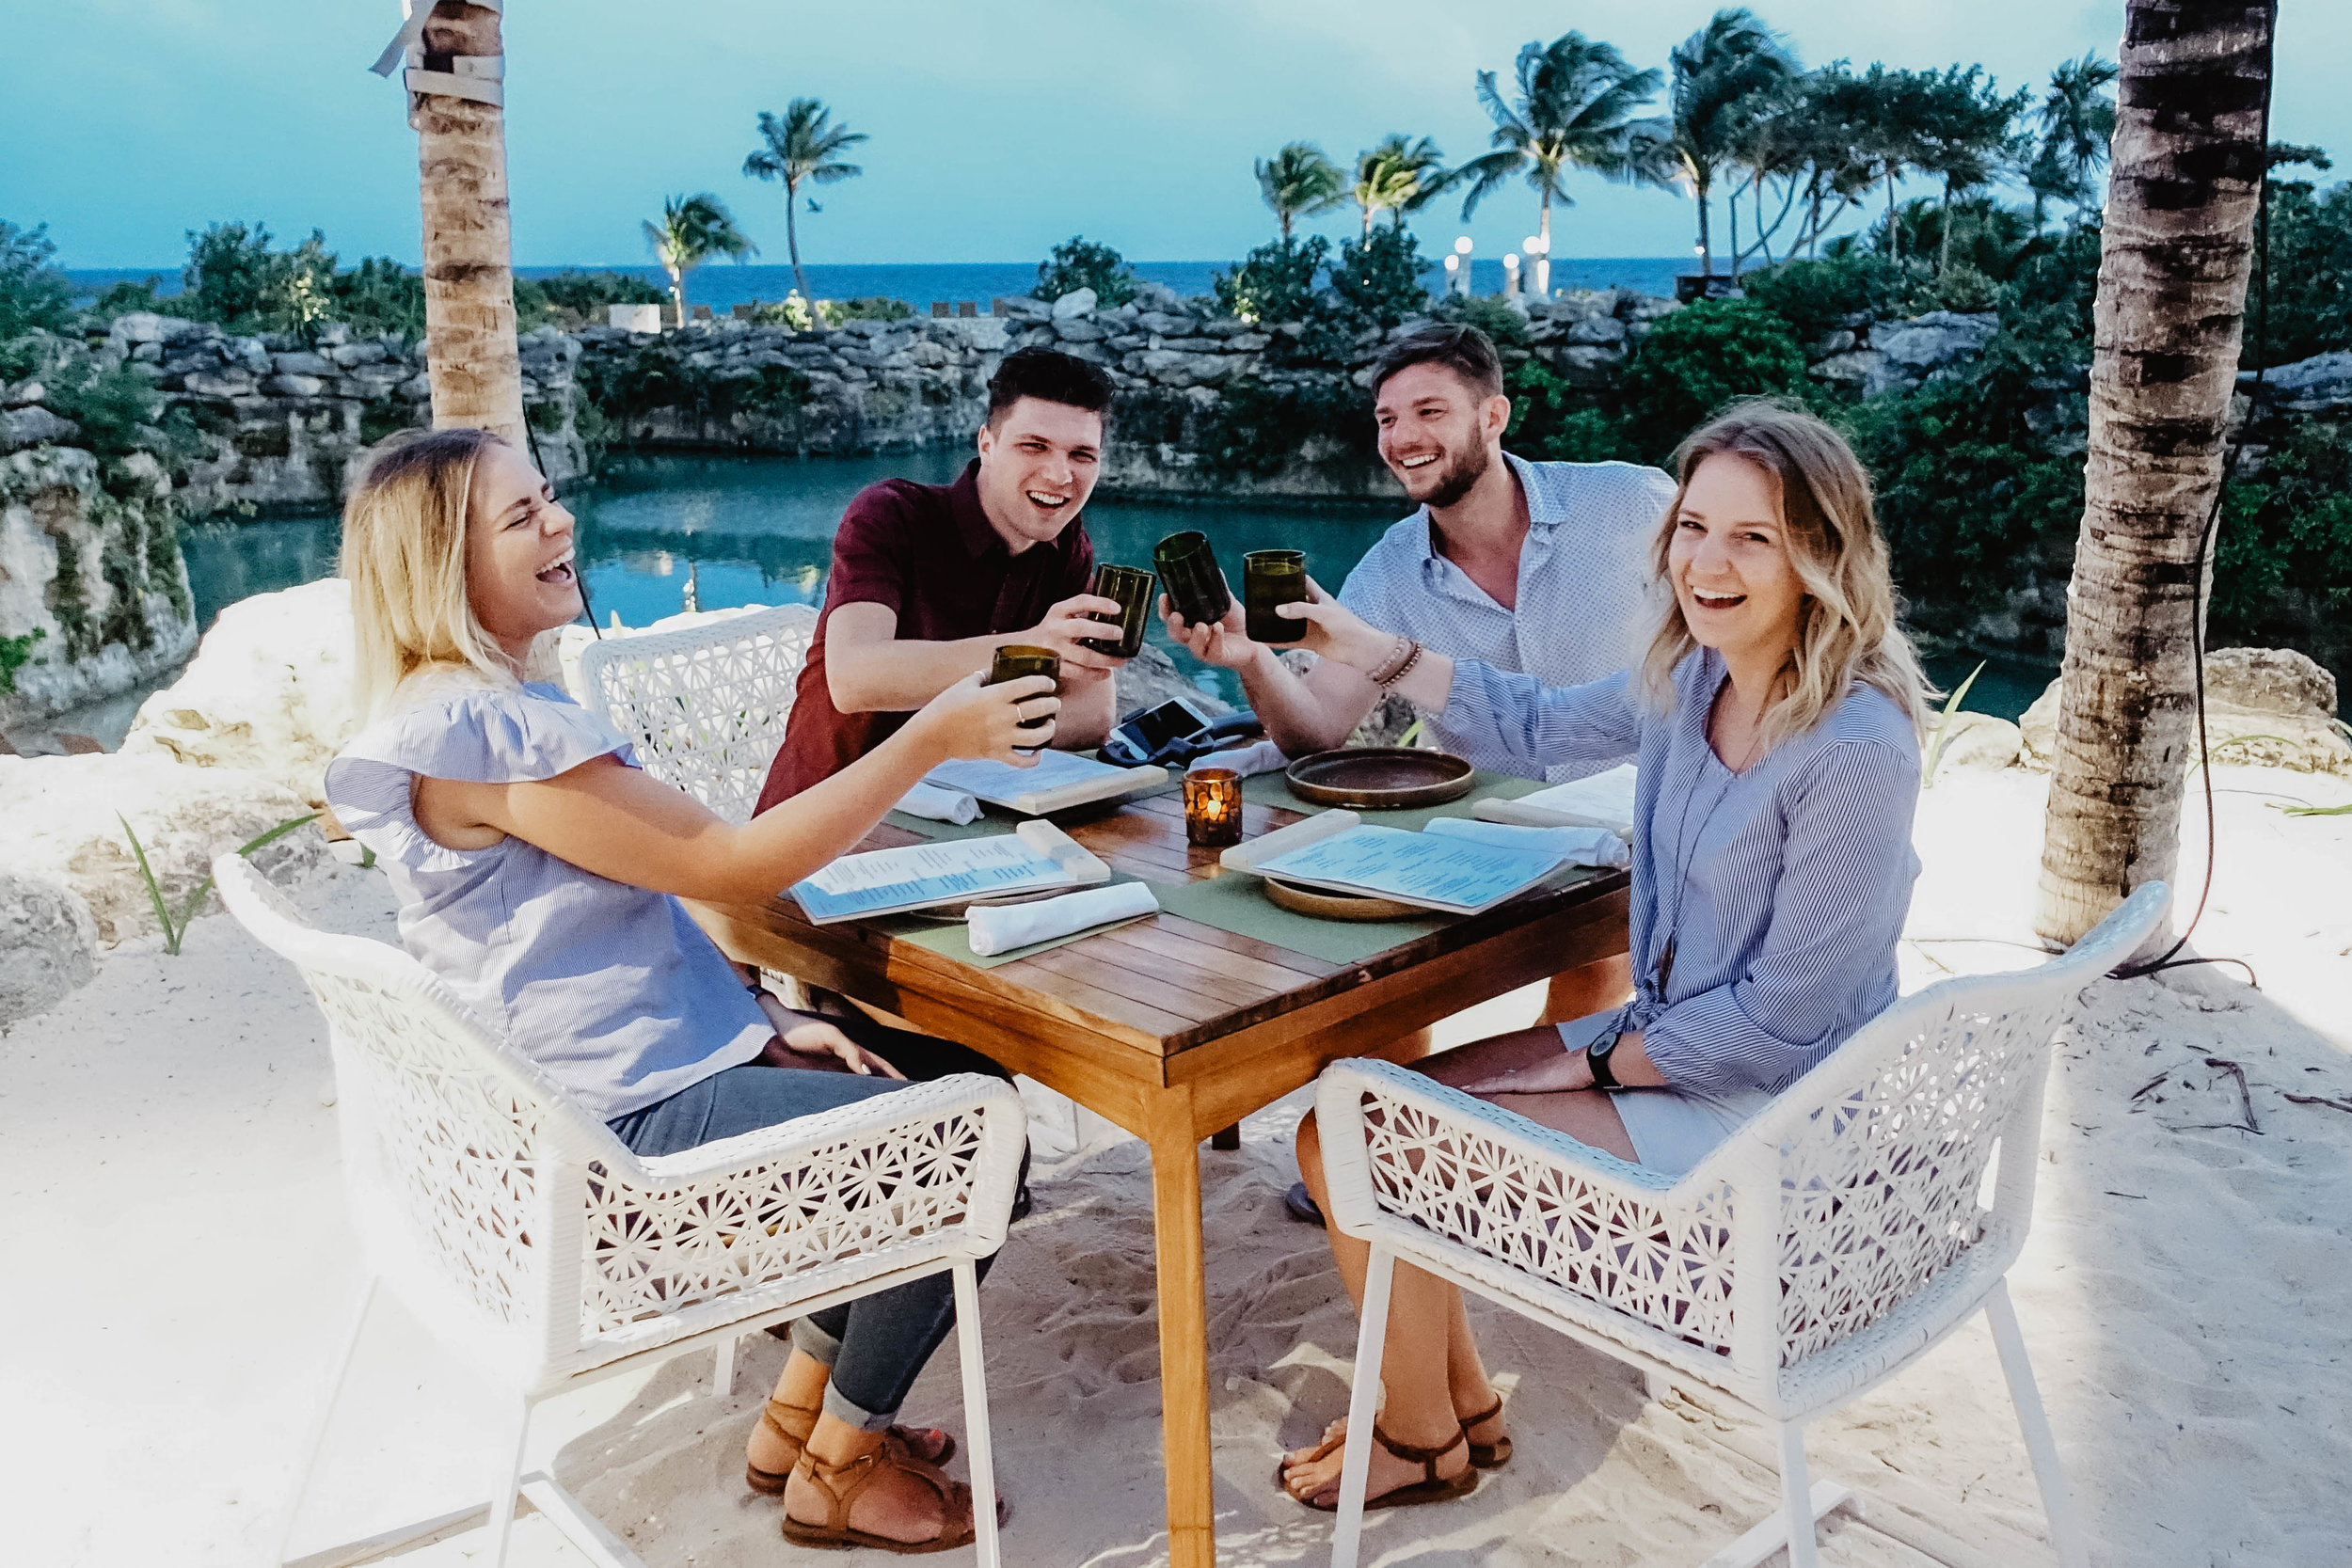 Four friends toasting to their last night in Mexico. View looking out over the ocean.